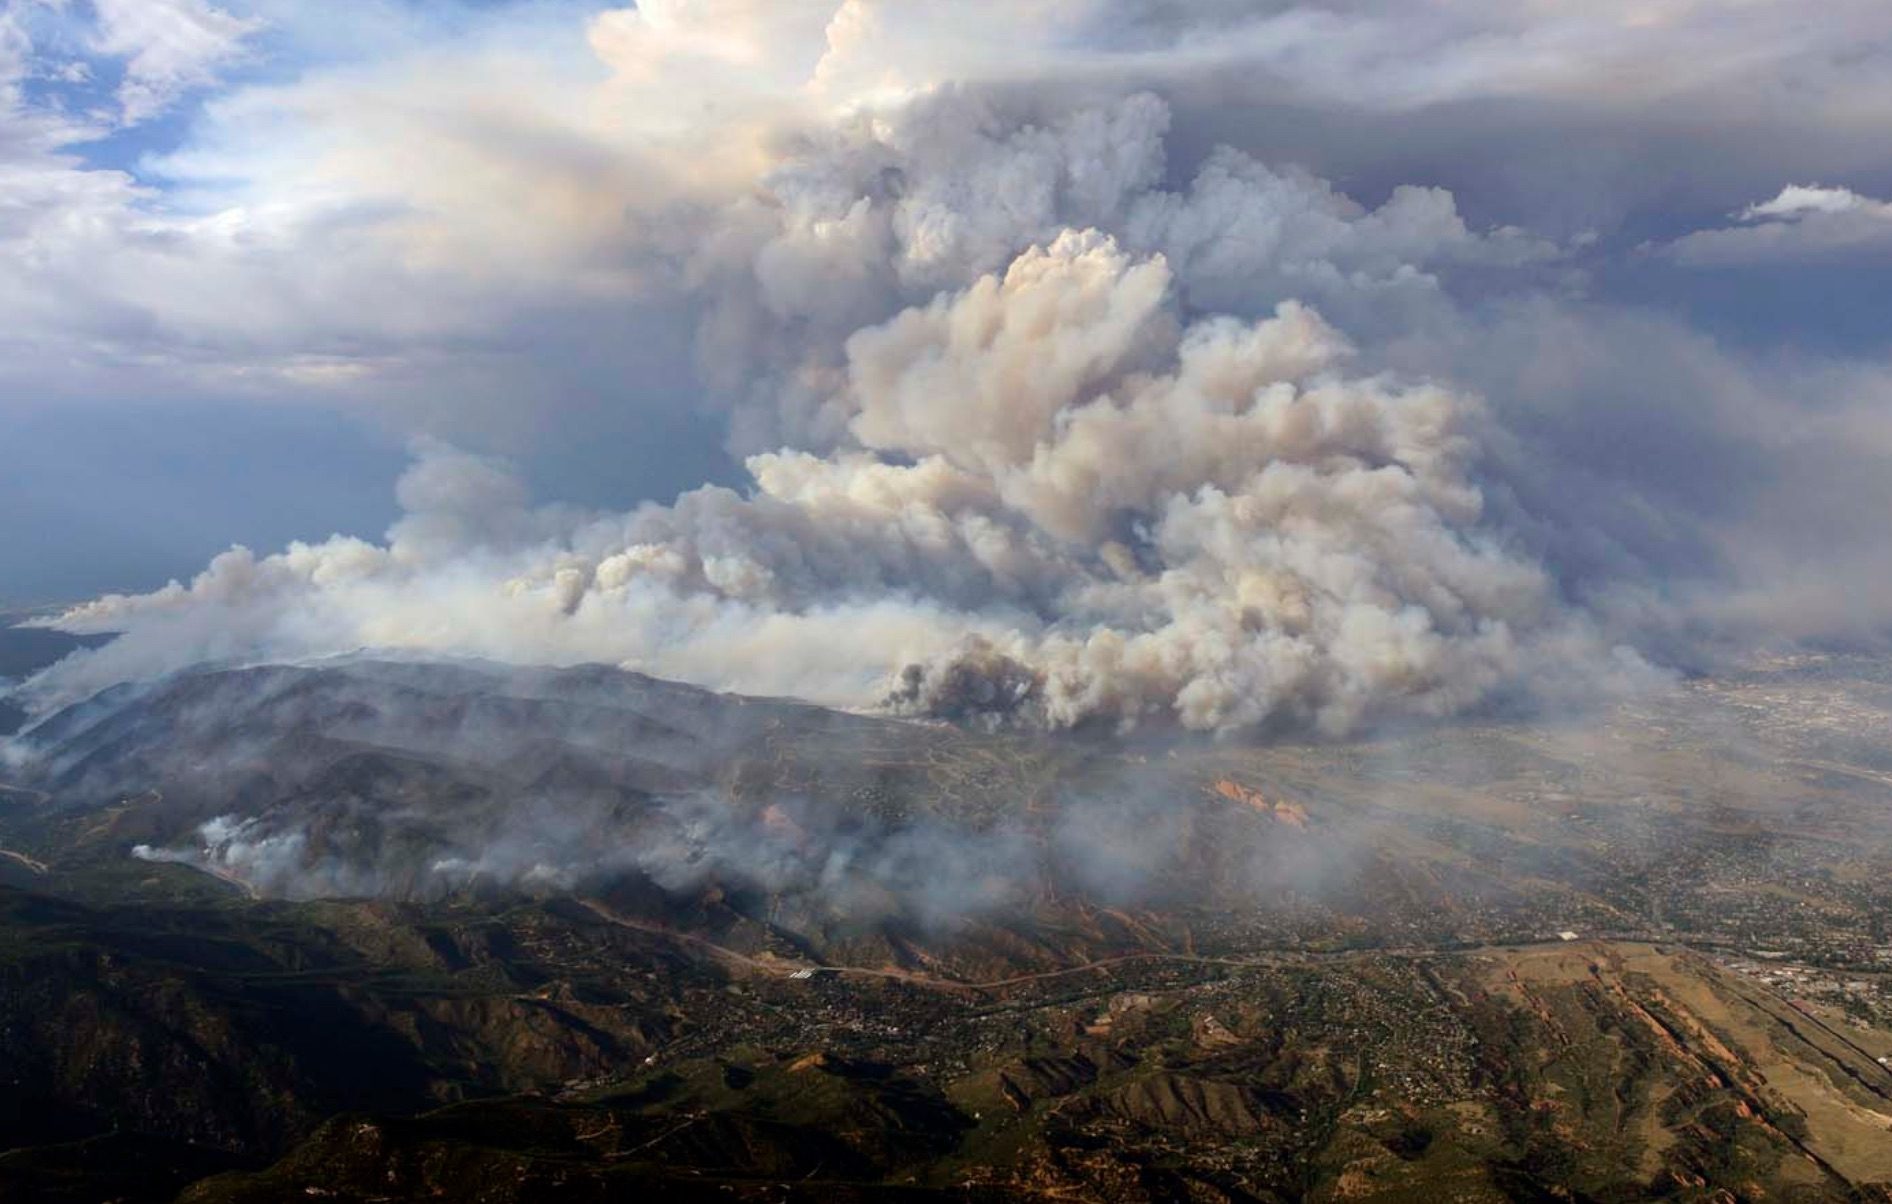 Plume of smoke rises from Waldo canyon wildfire in this aerial photograph taken in Colorado Springs, Colorado on June 26, 2012. (John Wark/Reuters)